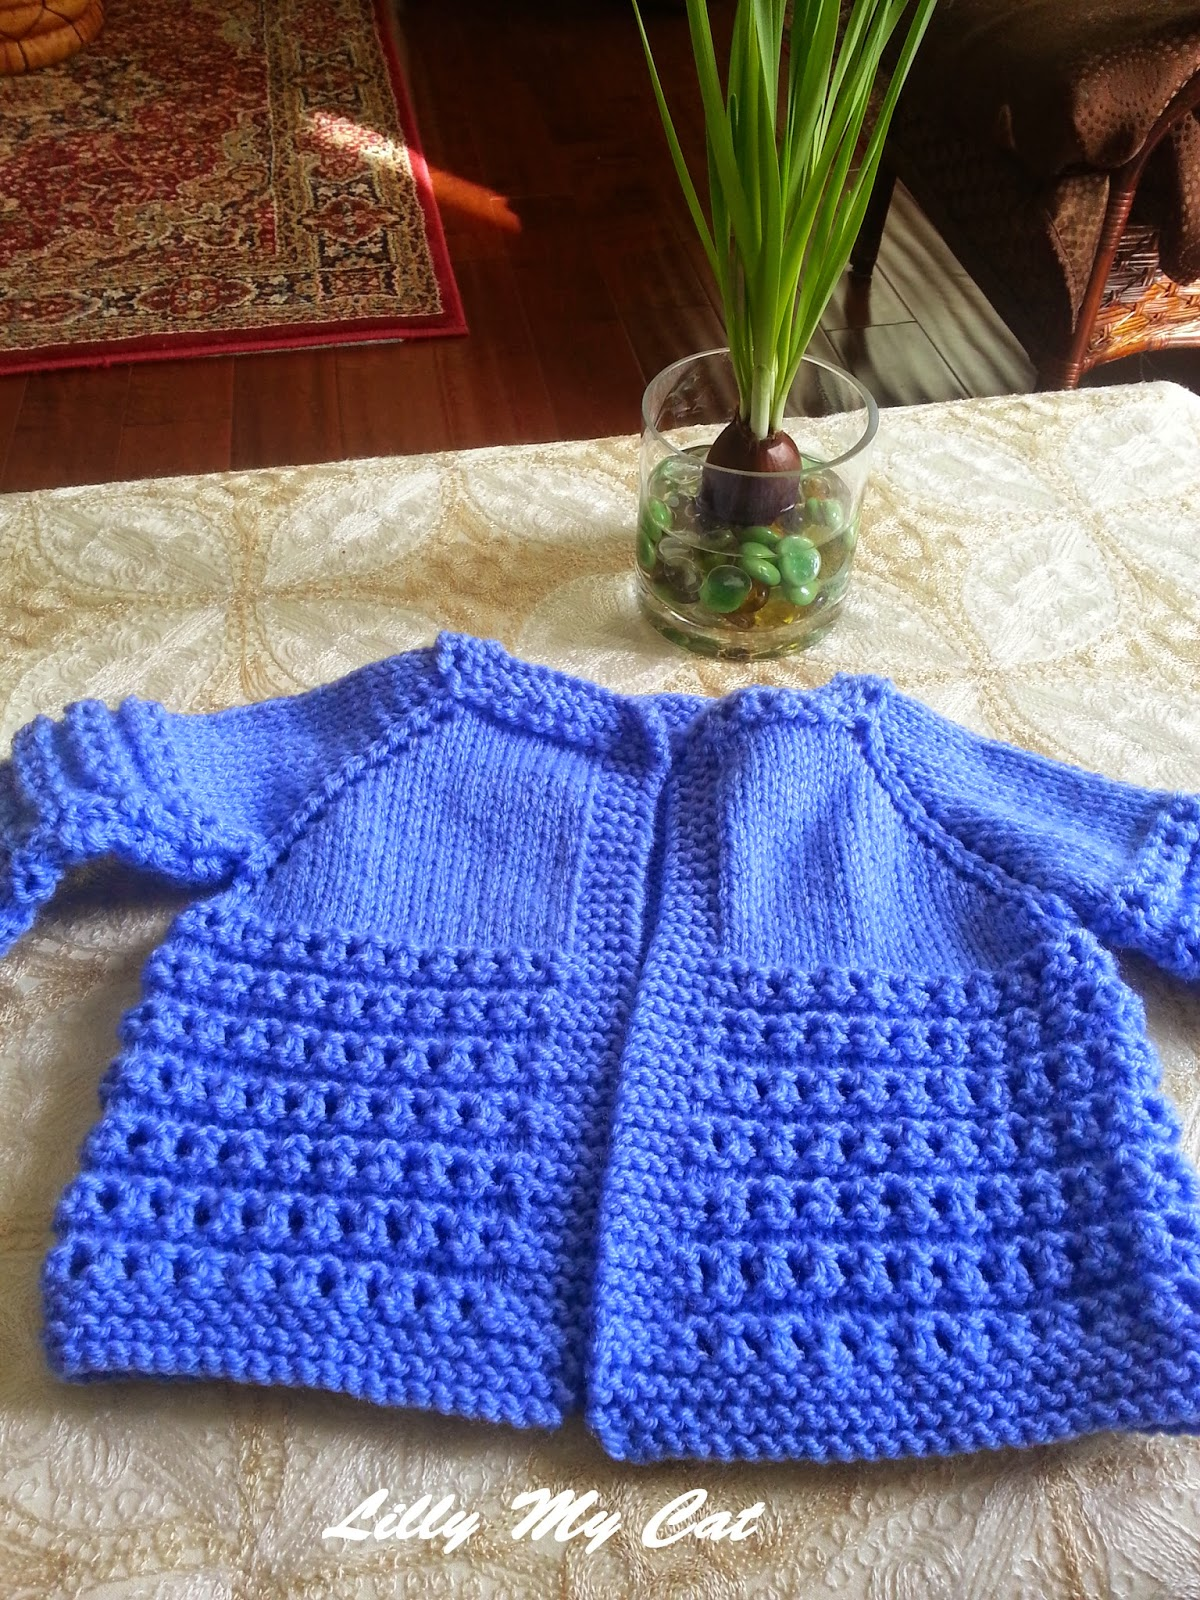 665404179 Lilly My Cat  TOP DOWN BABY SWEATER - Plymouth Yarn Company - FREE ...